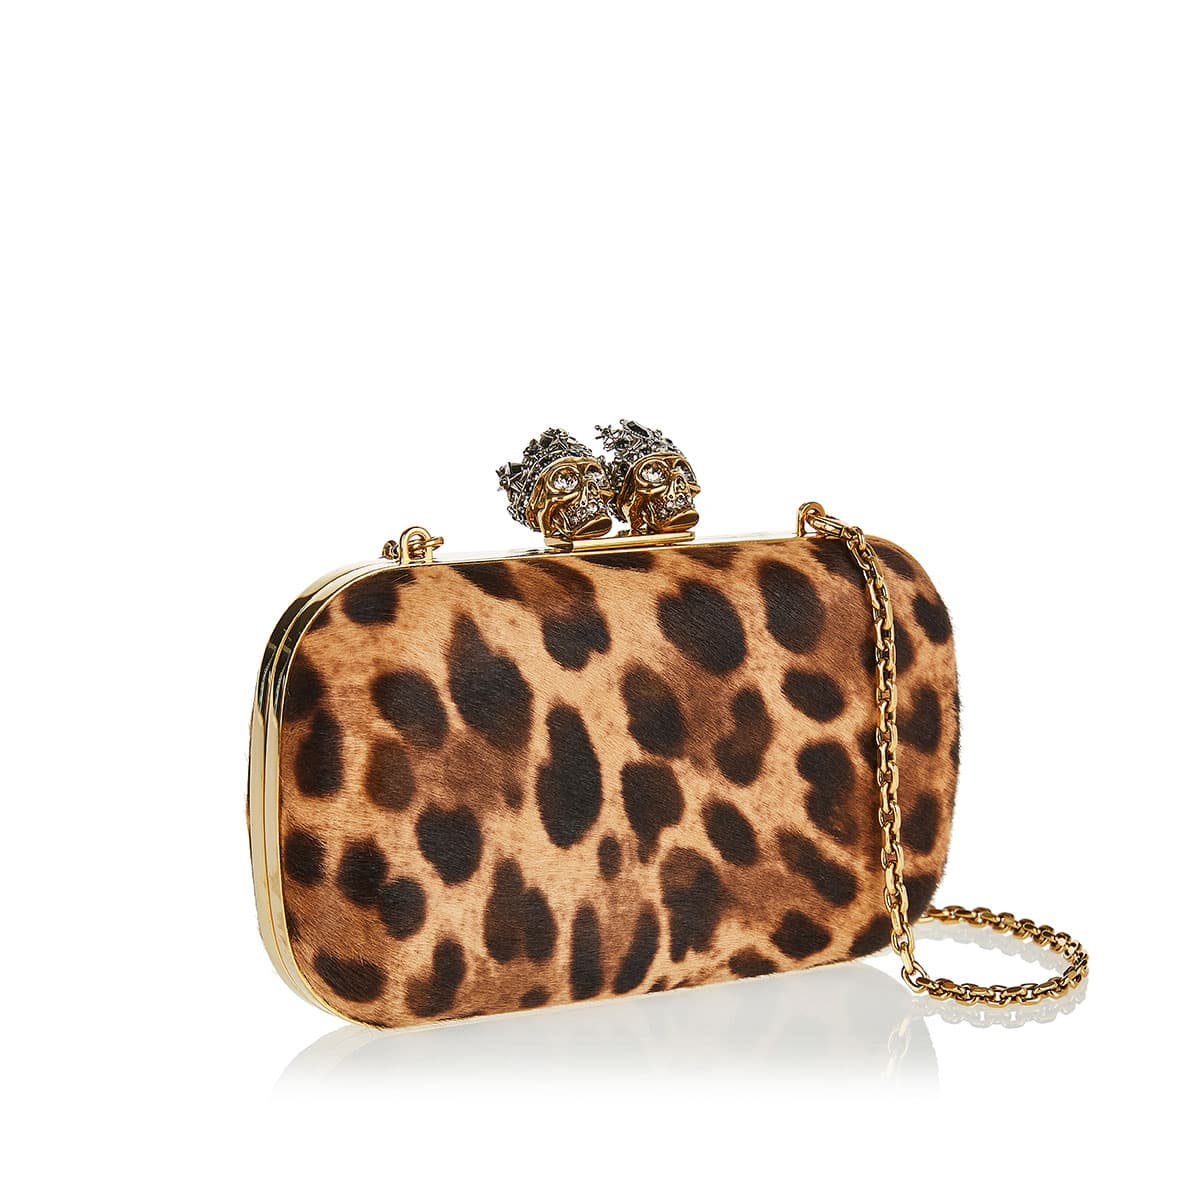 Queen and King leopard calf-hair clutch